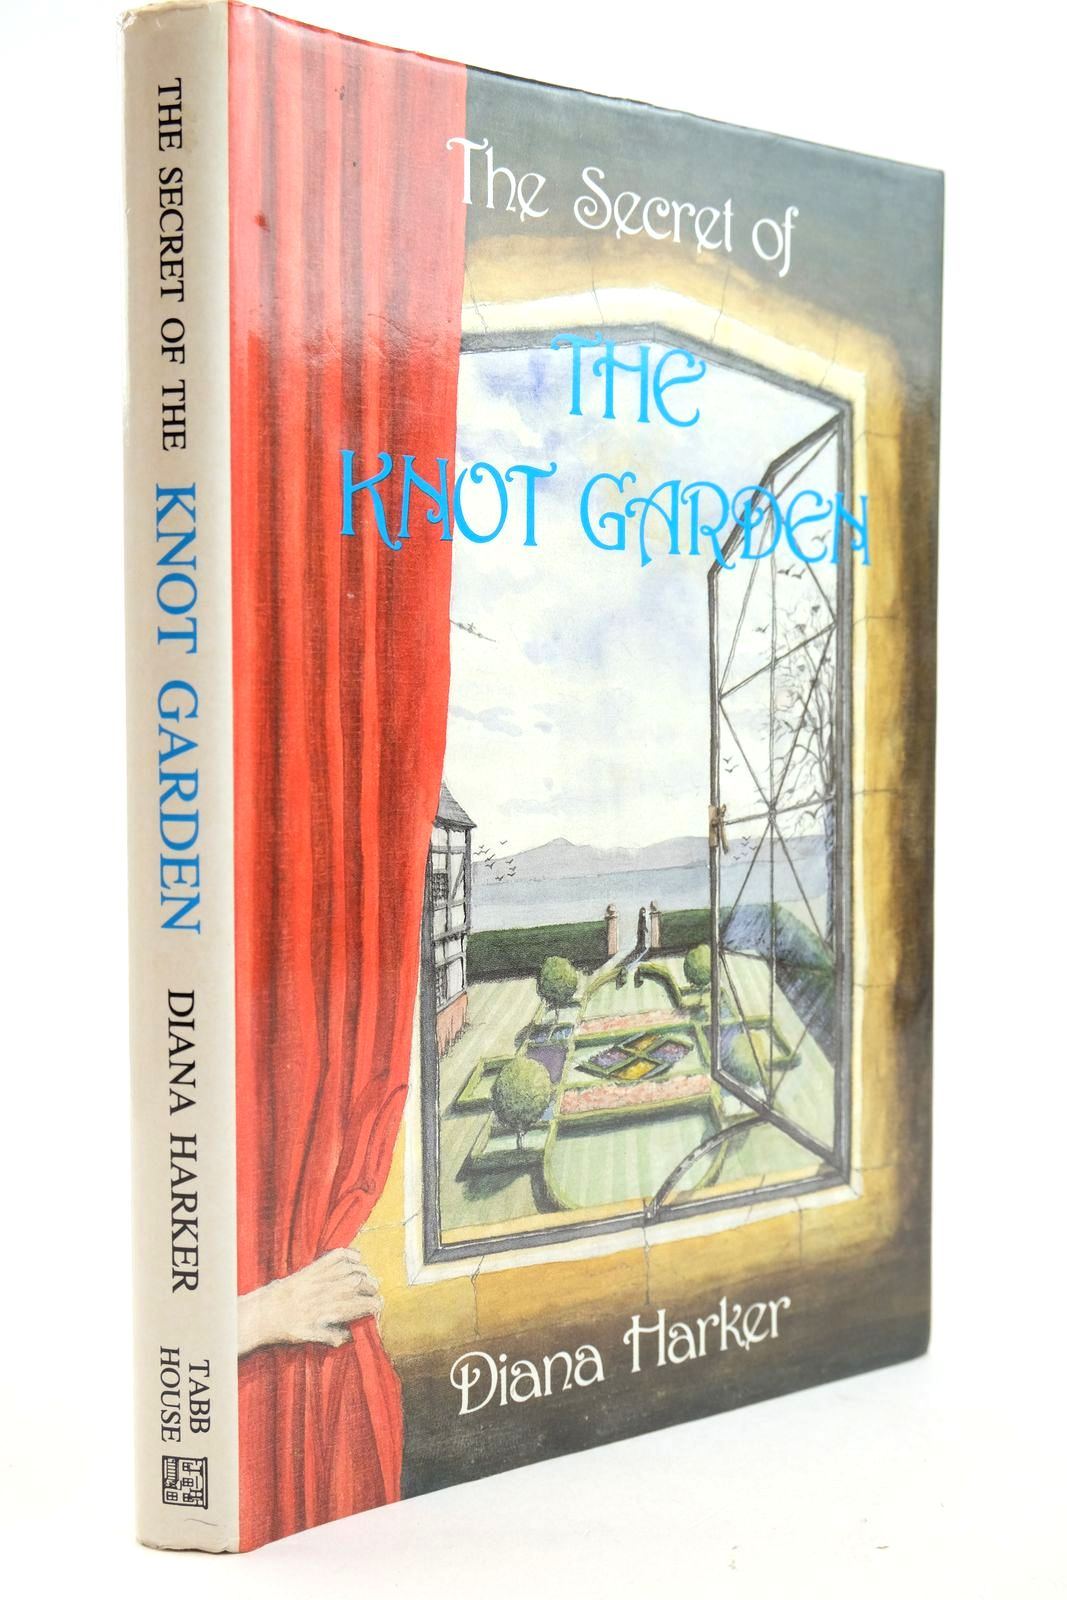 Photo of THE SECRET OF THE KNOT GARDEN written by Harker, Diana illustrated by Harker, Jonathan published by Tabb House (STOCK CODE: 2132991)  for sale by Stella & Rose's Books